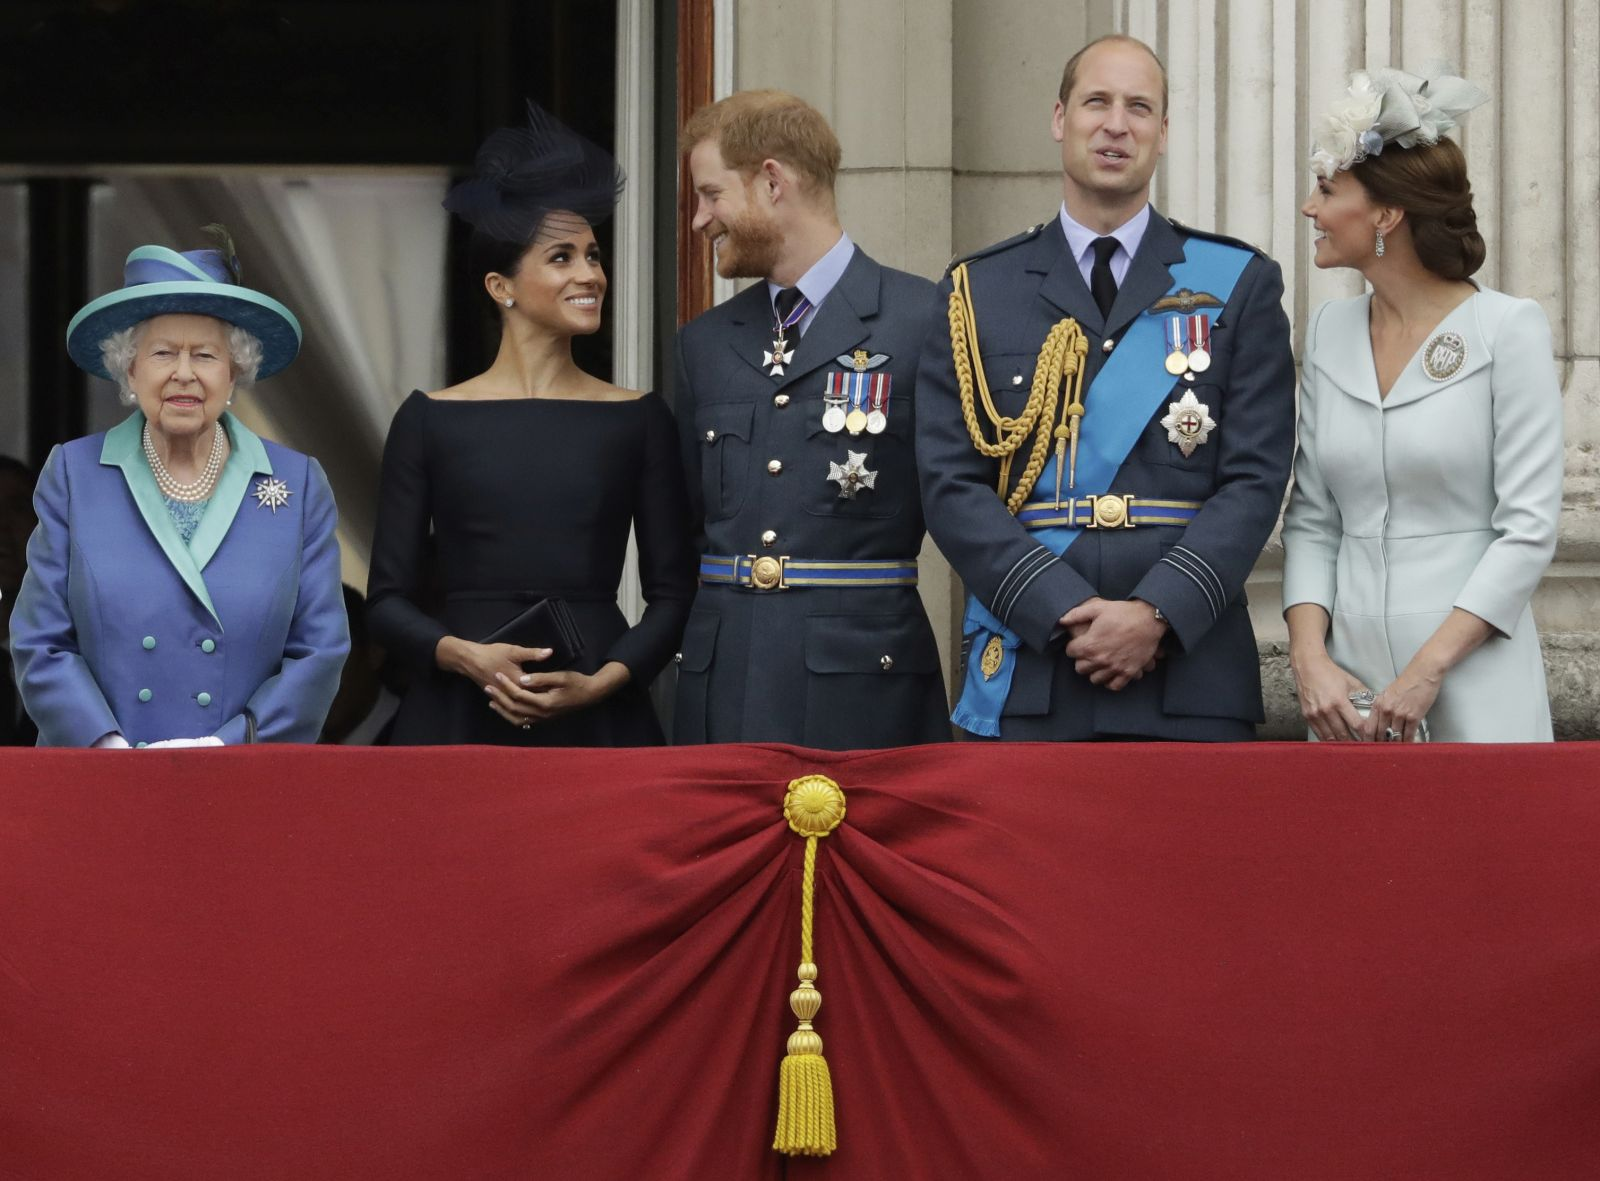 la reins isabel meghan harry kate y william